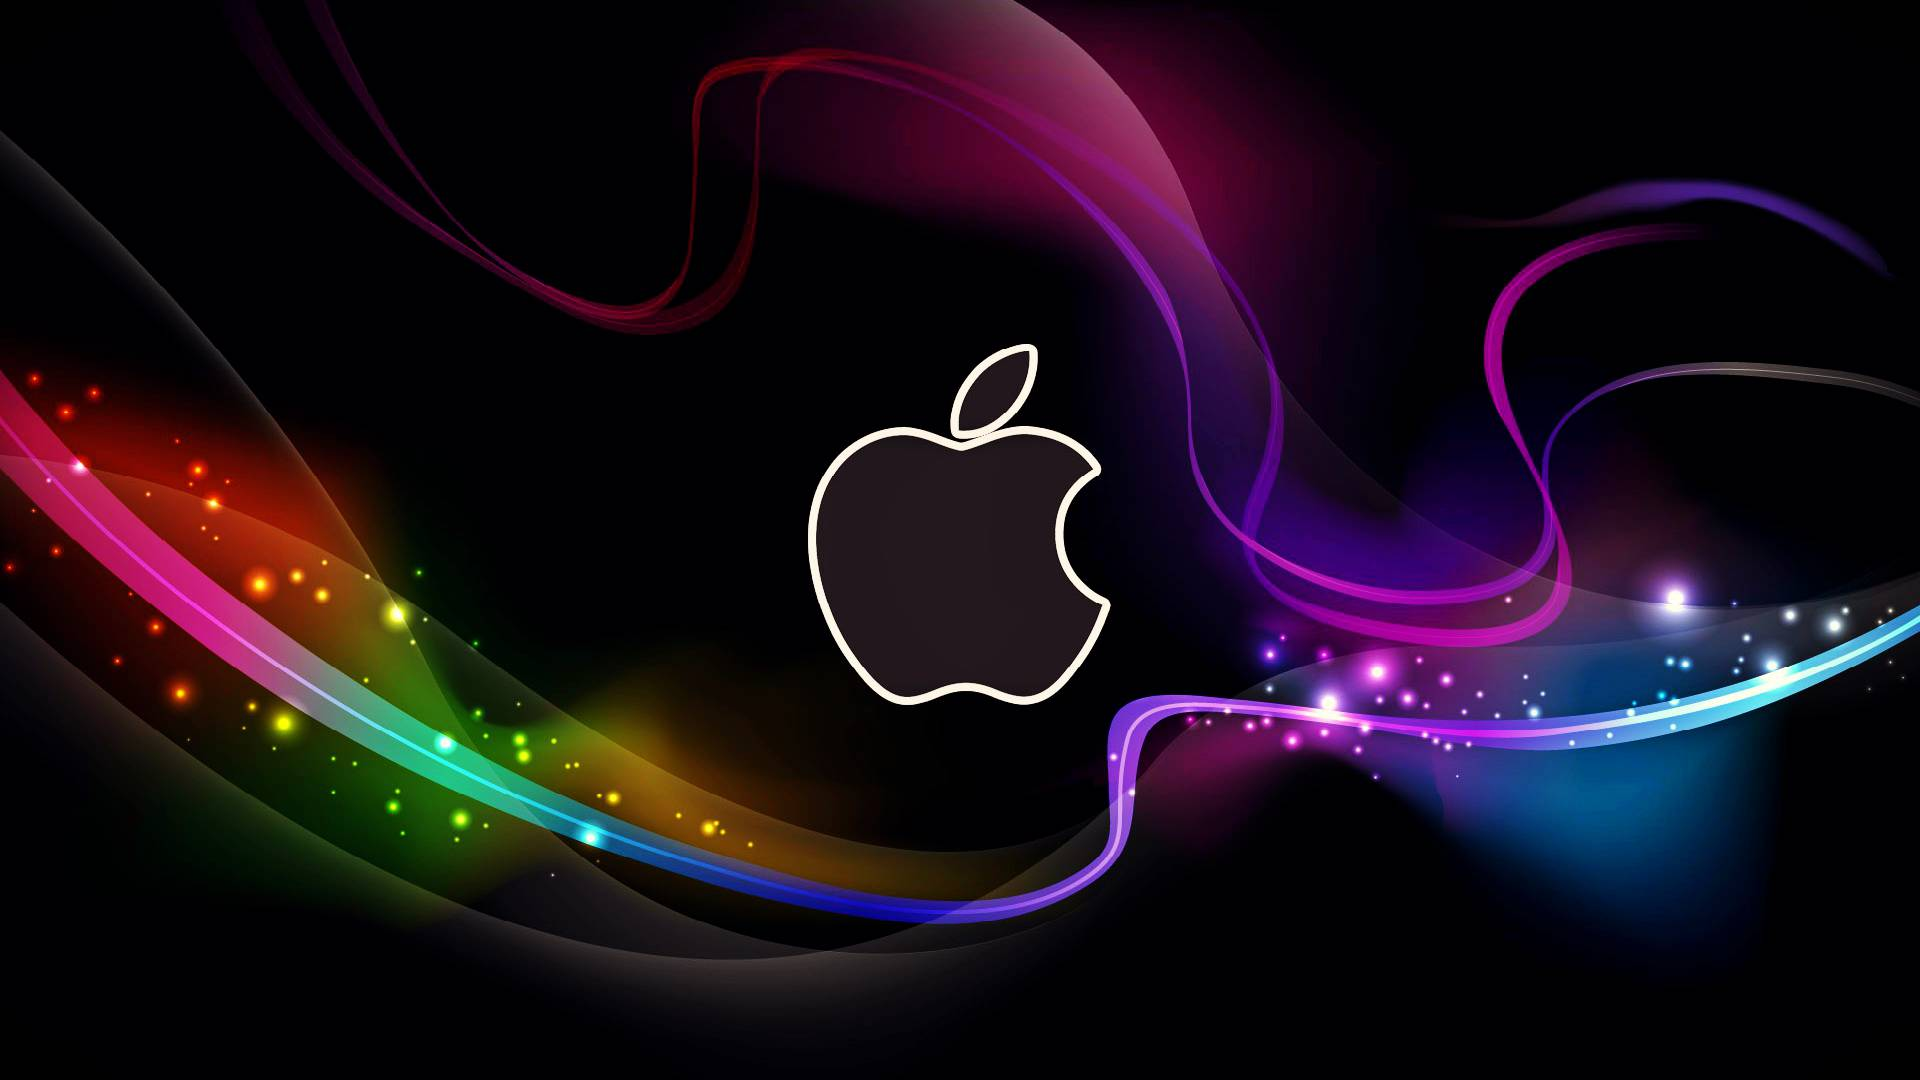 cool apple logo wallpaper #4